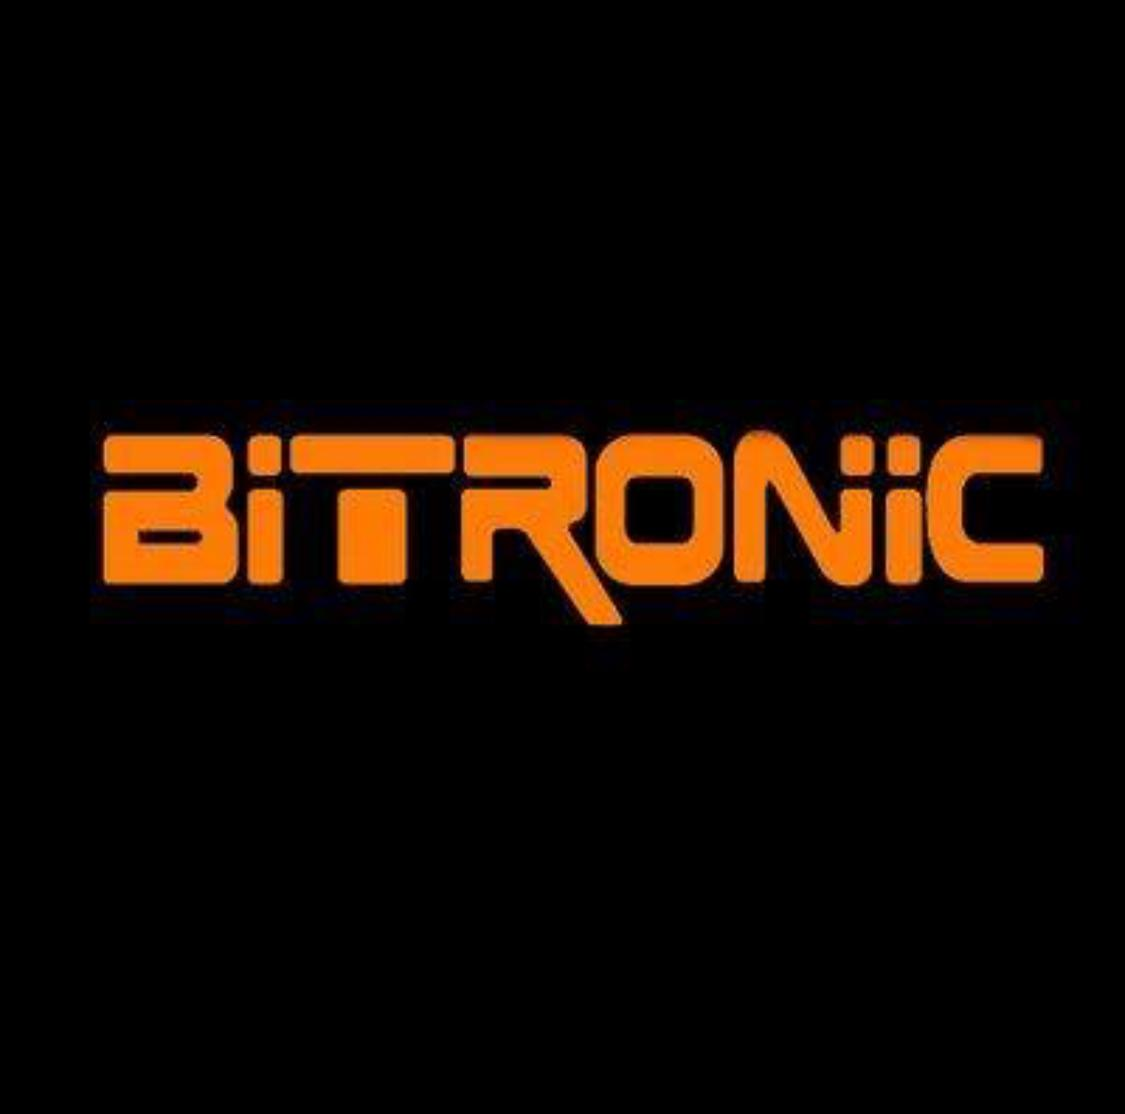 Recreativos Bitronic S.L